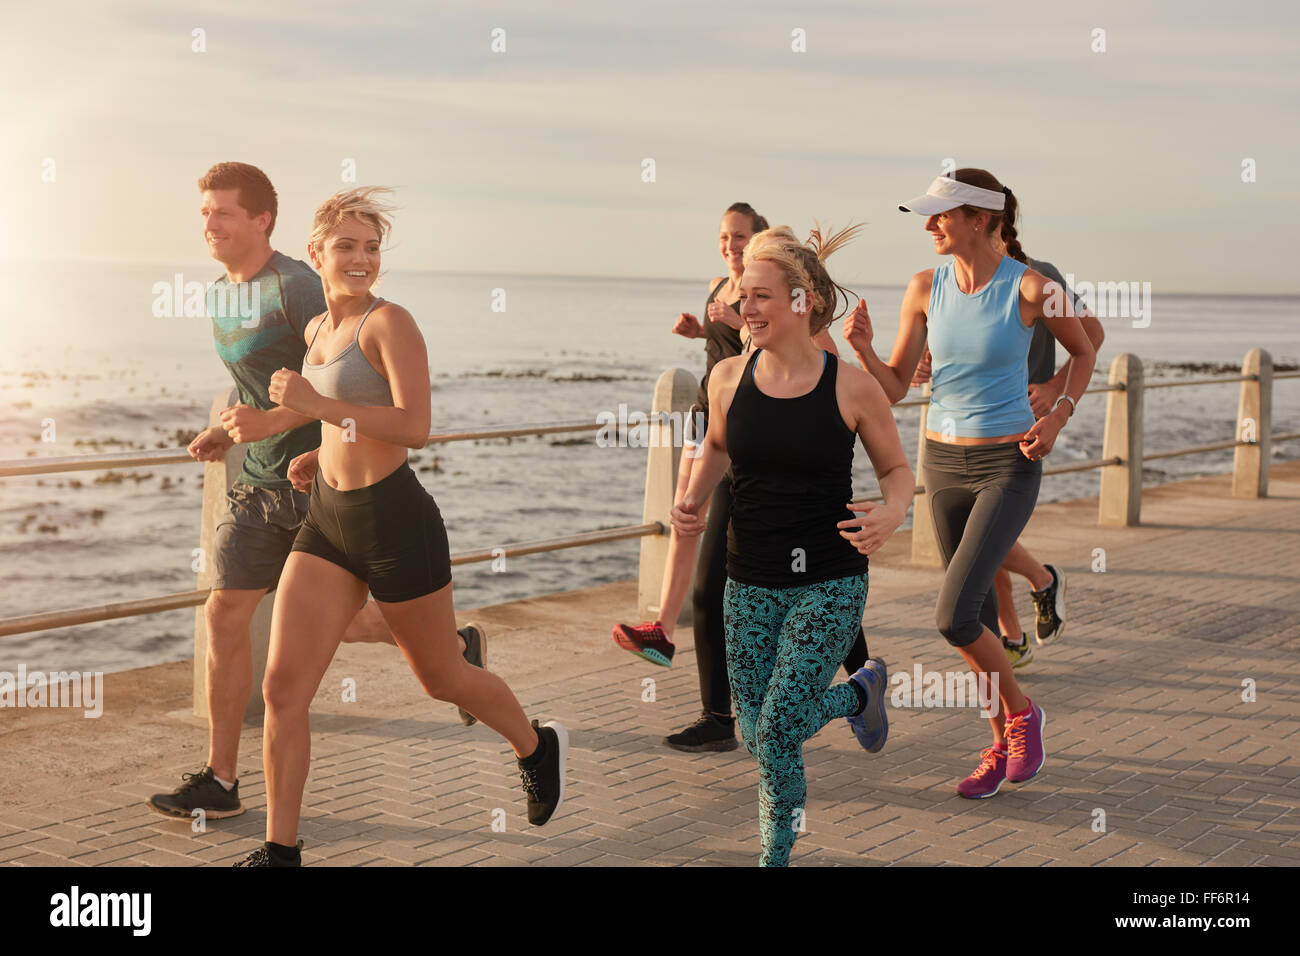 Portrait of young people running by the sea in morning, Healthy young men and women doing running workout. - Stock Image